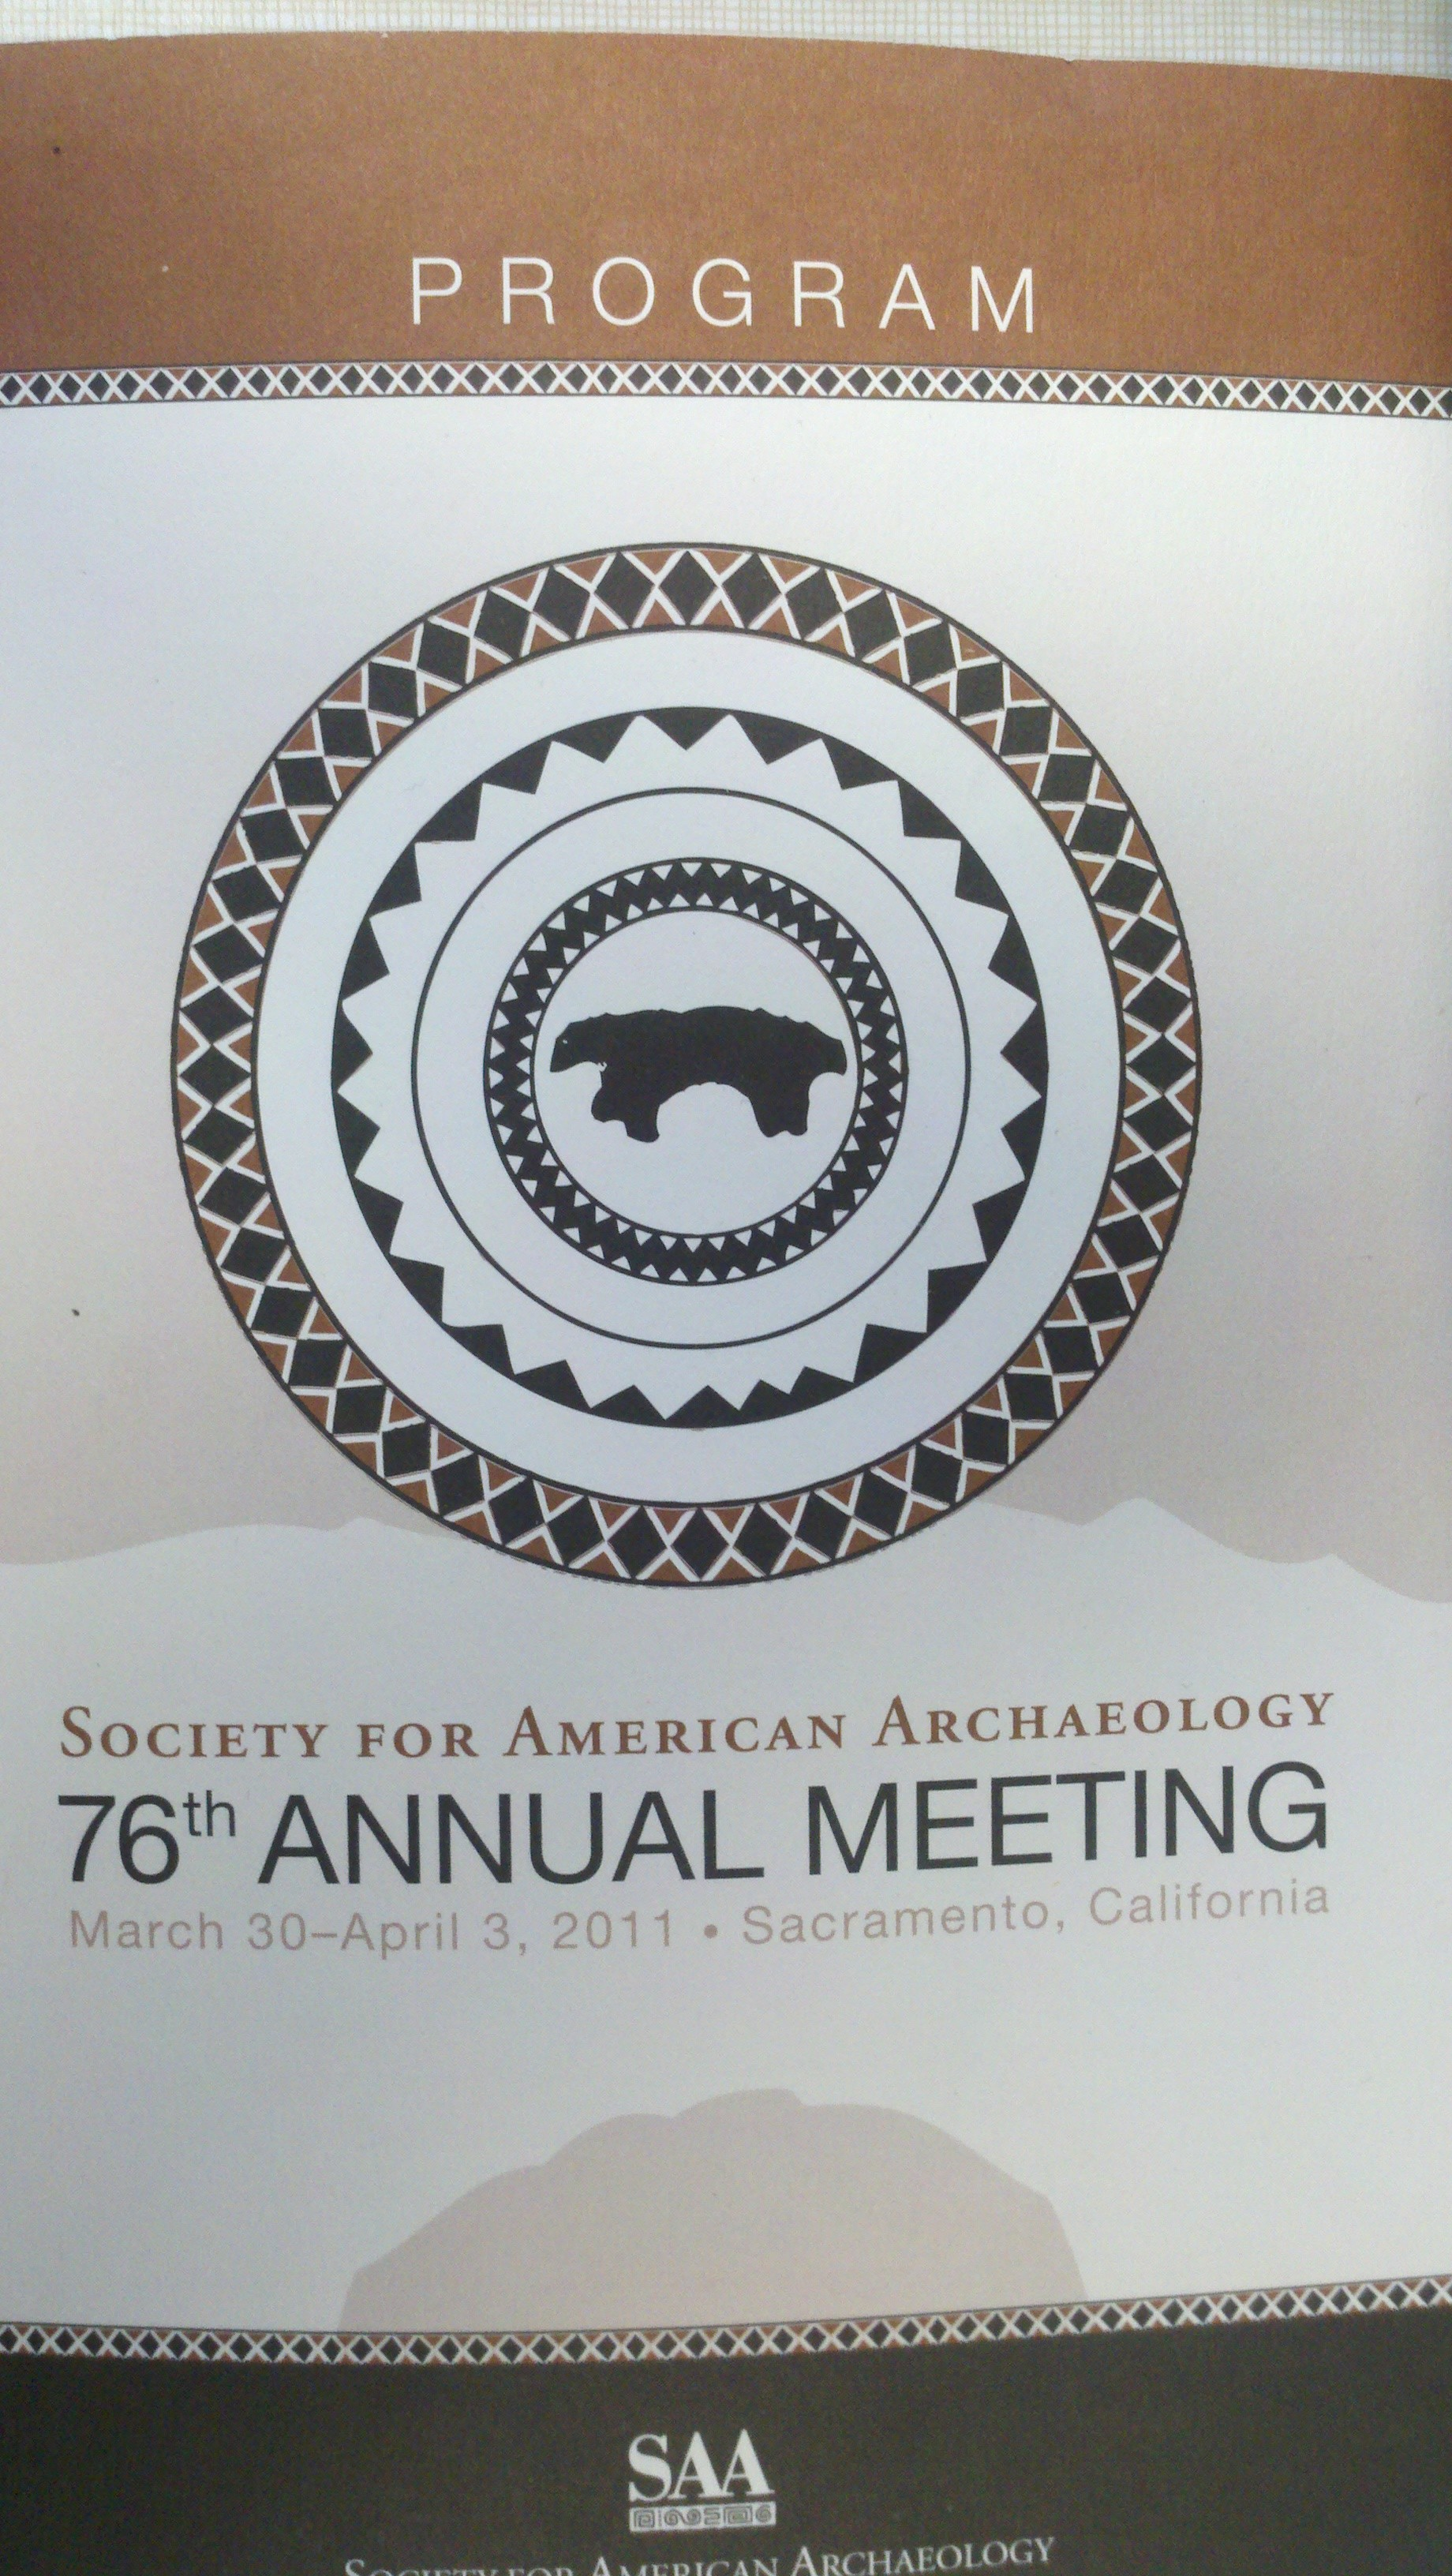 Saa symposium sex and gender bioarchaeology date